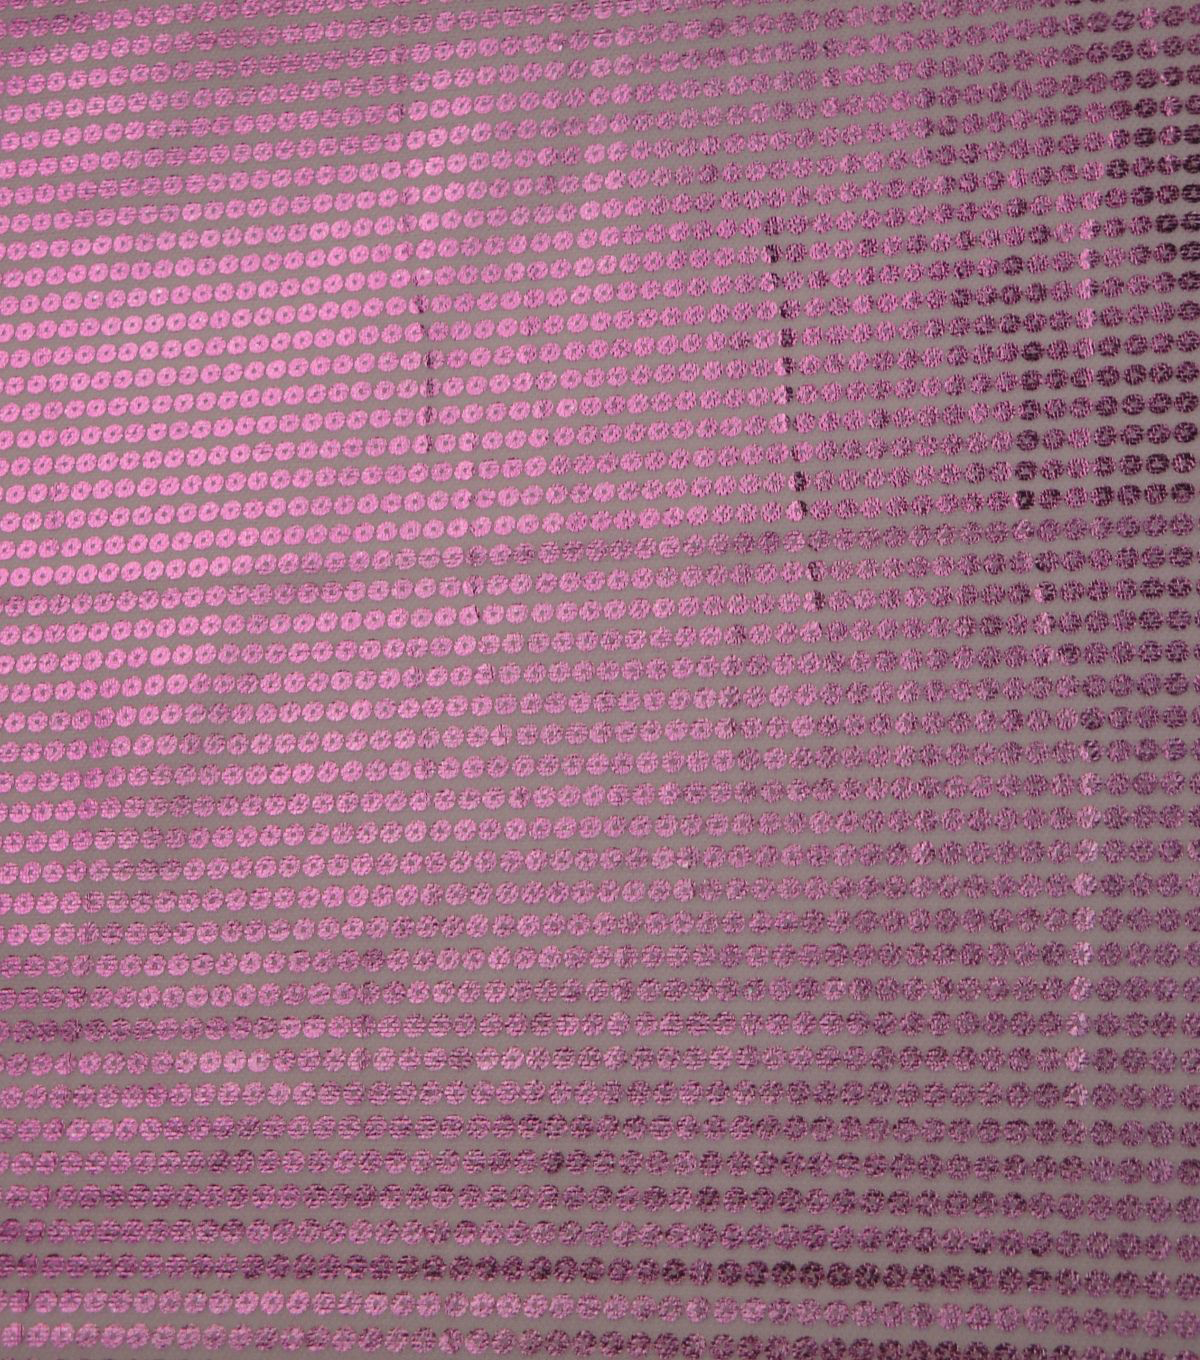 Glitterbug Foiled Sequin Stretch Fabric Fabric-Light Pink